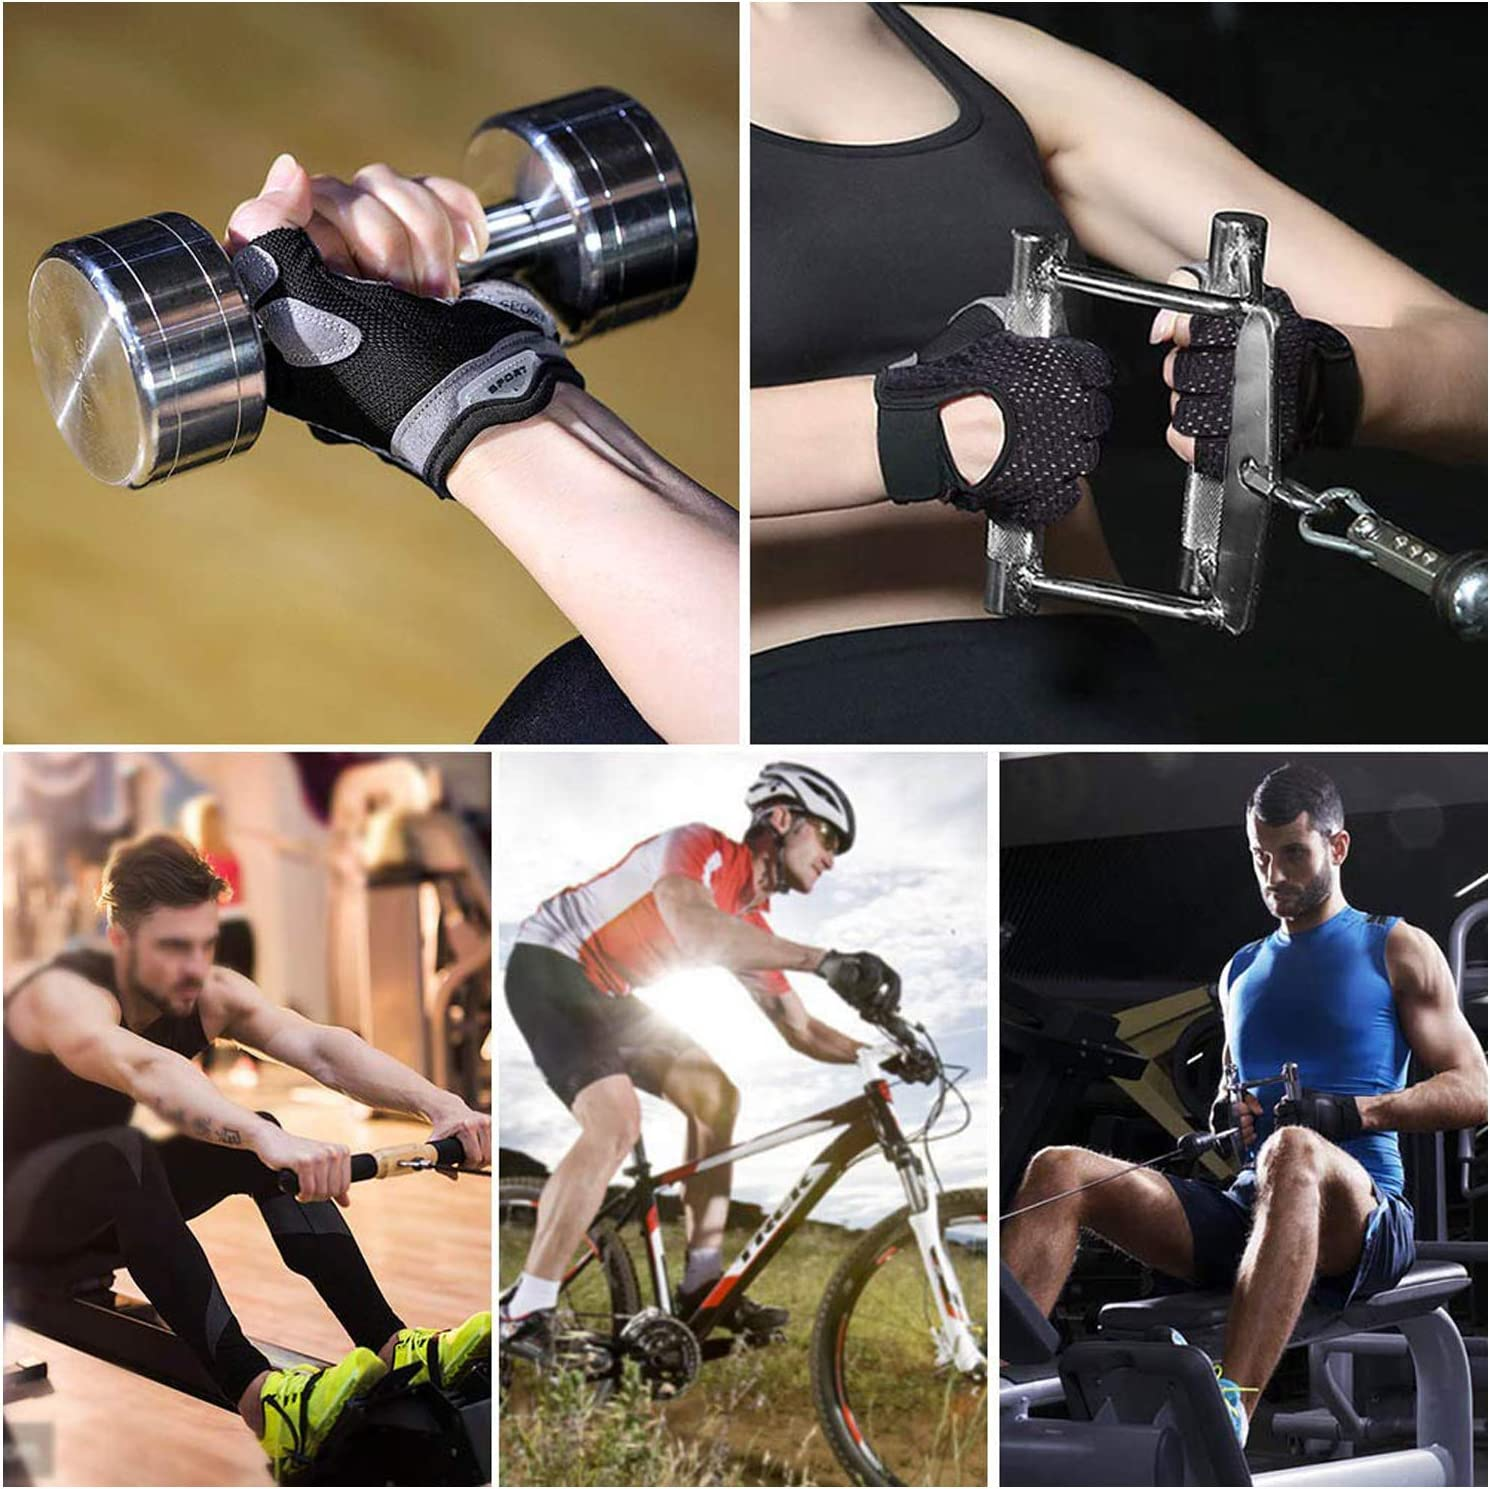 Weight Lifting Gloves for Workout Exercise Training Fitness Qeedy Workout Gloves Gym Gloves with Anti-Slip Leather Palm Bodybuilding for Men /& Women